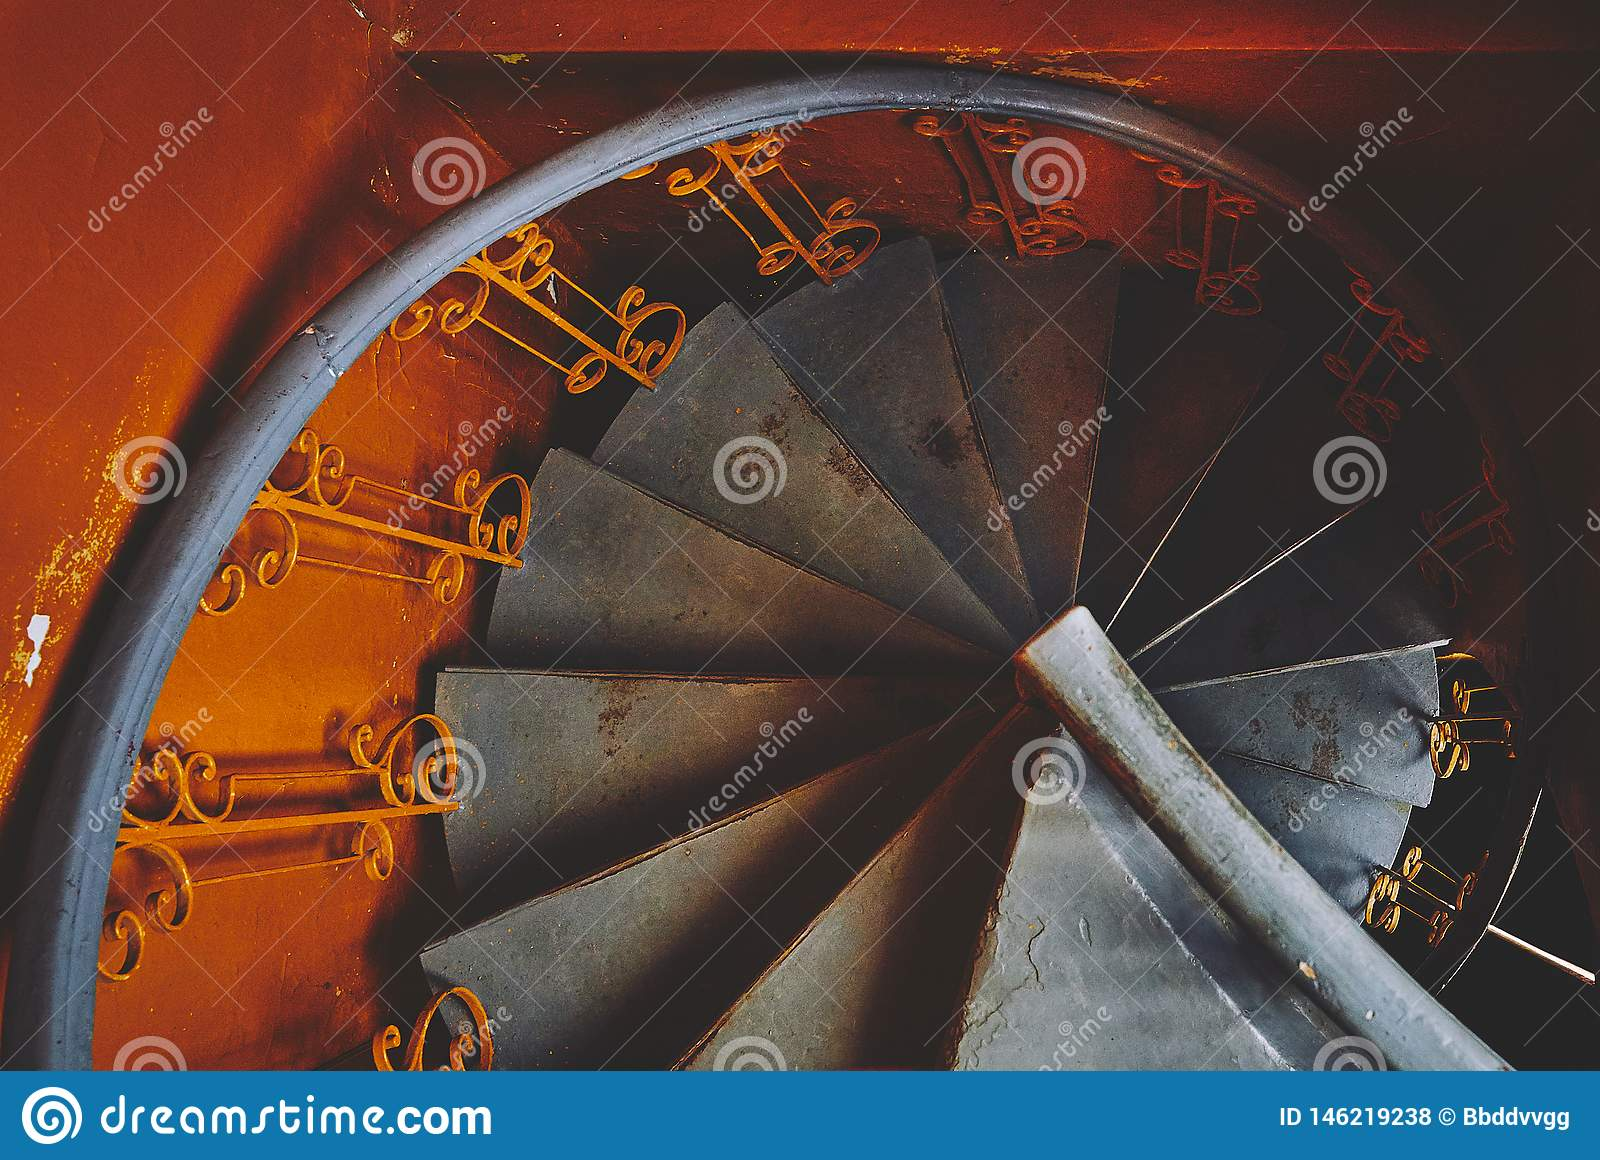 Gray spiral staircase in an old orange train, in ocher style,  spirals and descending lines of steps